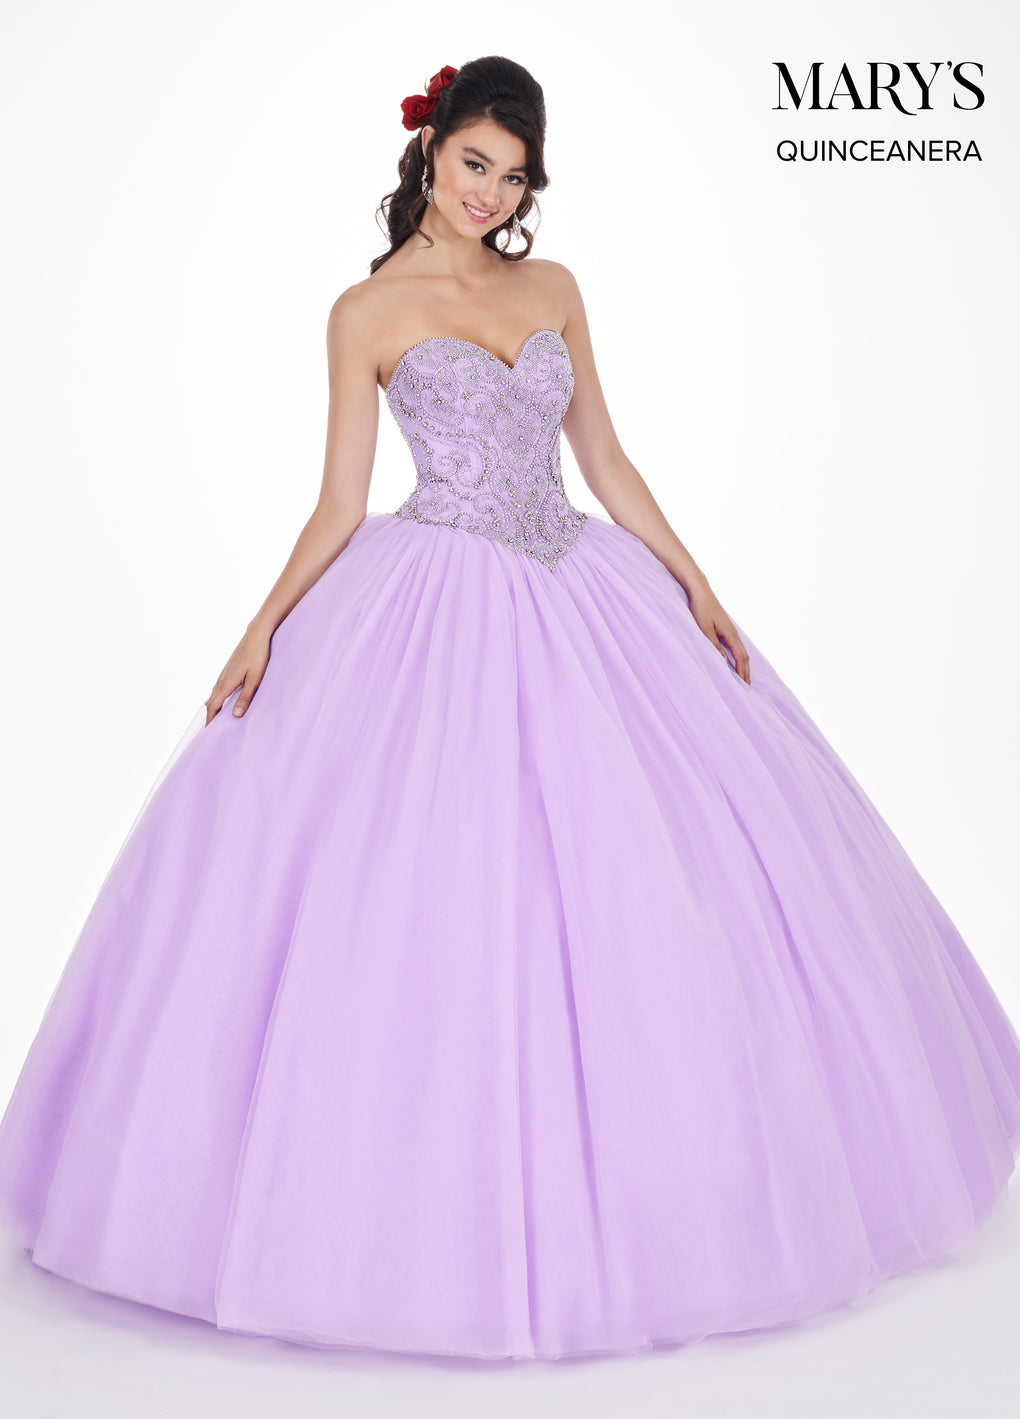 Marys Quinceanera Dresses in Lilac, Blush, or Burgundy Color